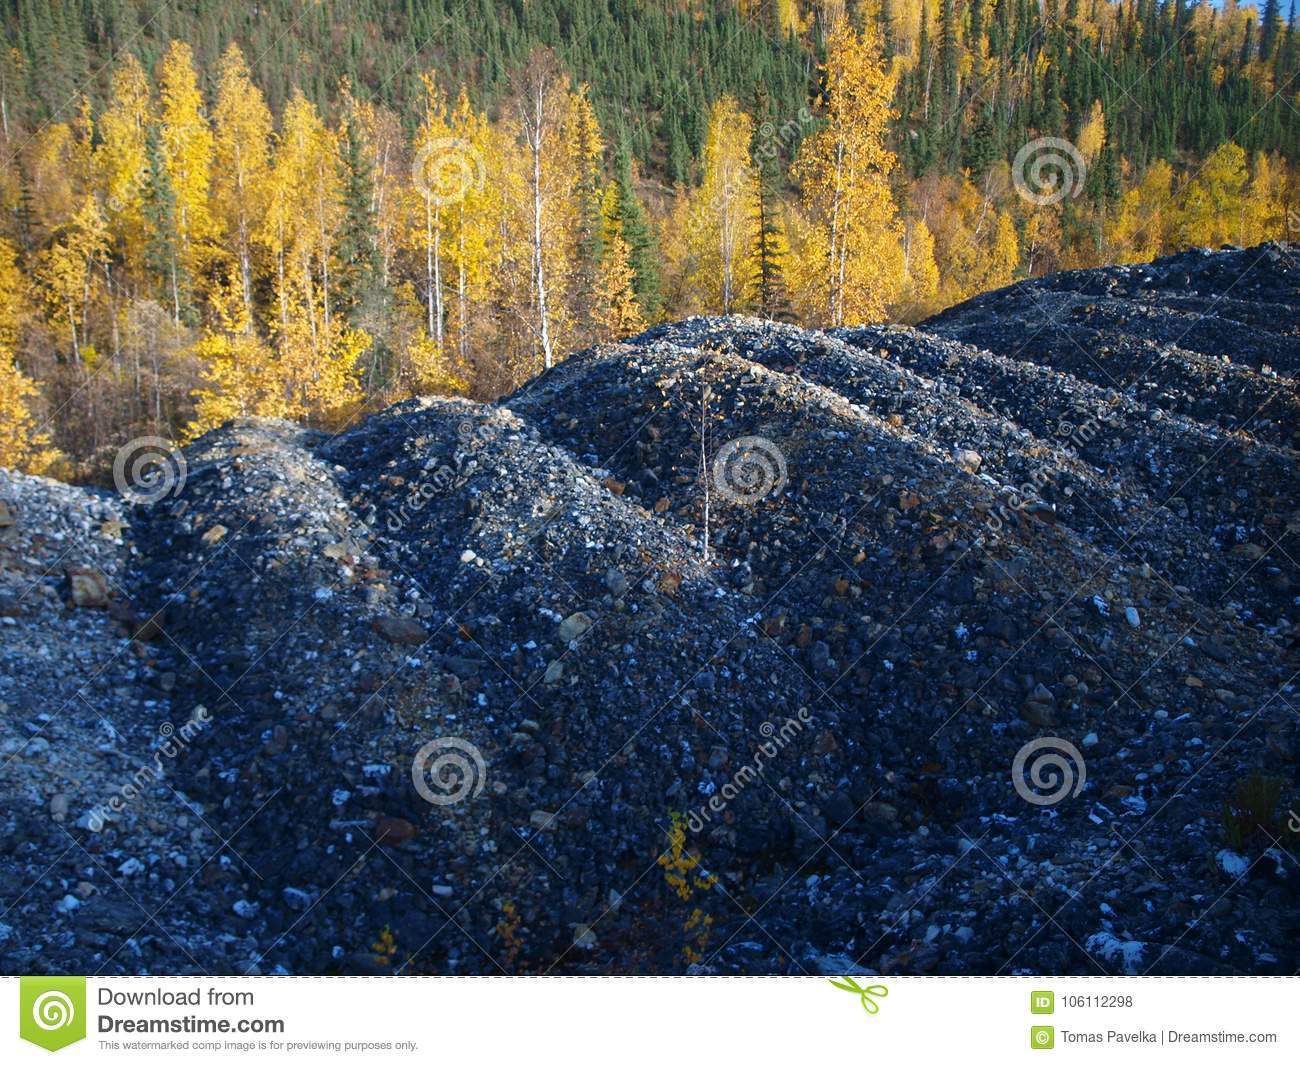 Dredge tailings stock photo  Image of blue, placer, fall - 106112298